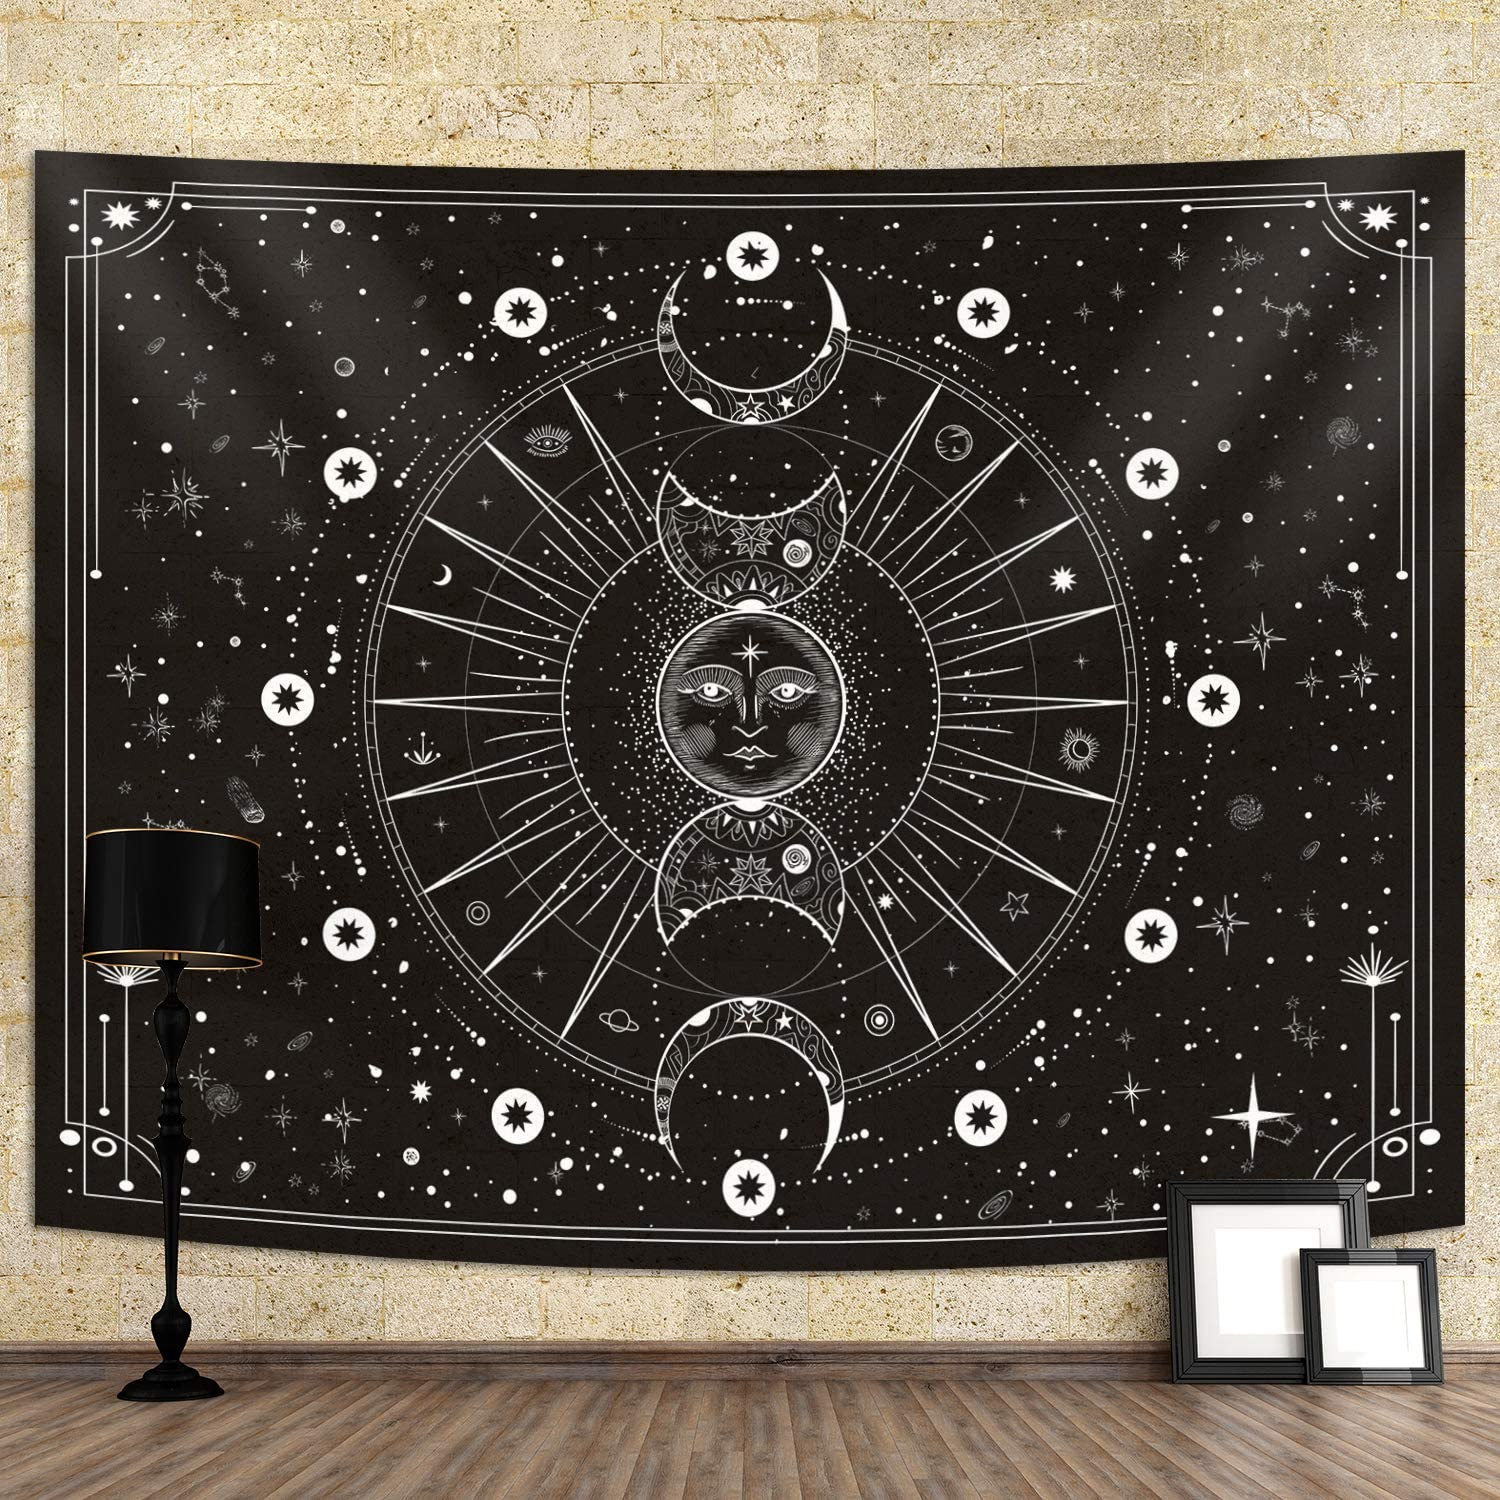 Sun Moon Tapestry Wall Hanging Stars Space Psychedelic Black and White Wall Tapestry for Bedroom Home Wall Décor (60x80 Inches, 150x200 cm)